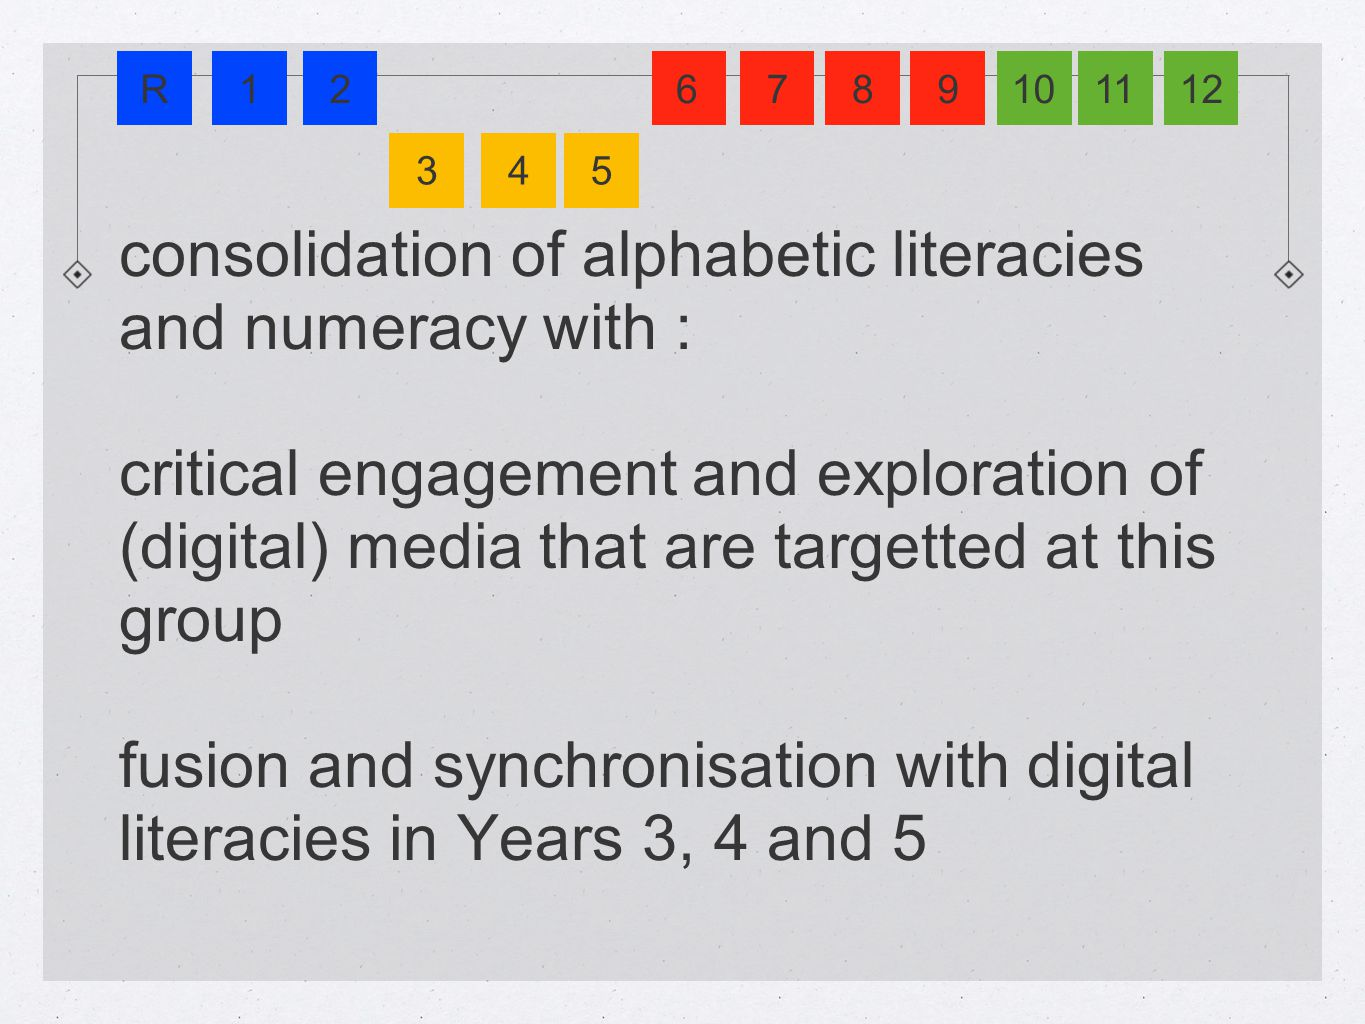 consolidation of alphabetic literacies and numeracy with : critical engagement and exploration of (digital) media that are targetted at this group fusion and synchronisation with digital literacies in Years 3, 4 and 5 R12 345 6781091211